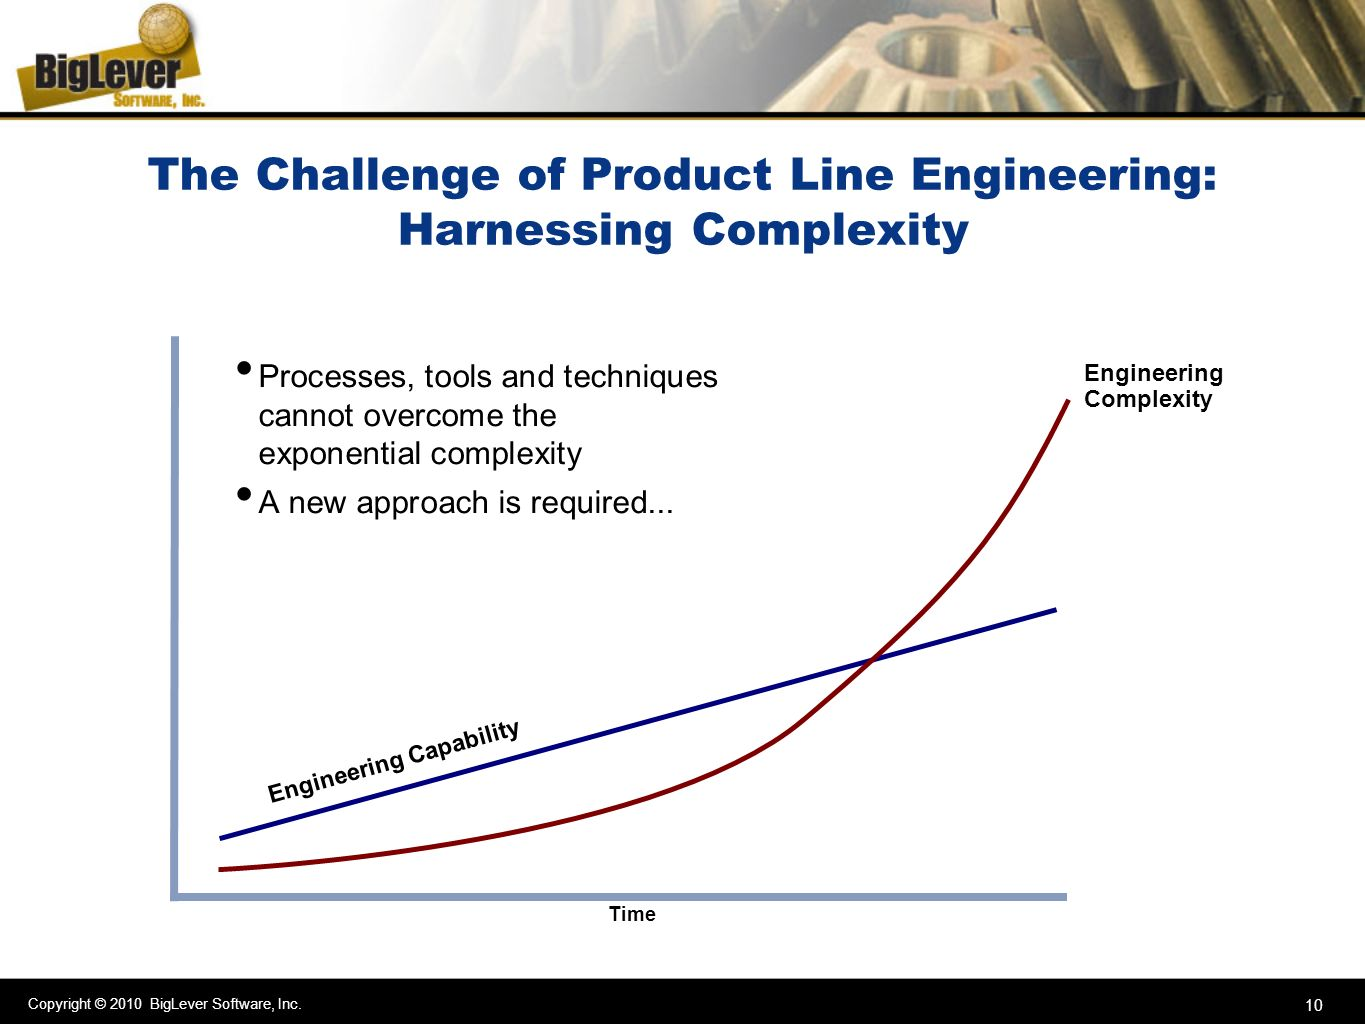 The Challenge of Product Line Engineering: Harnessing Complexity